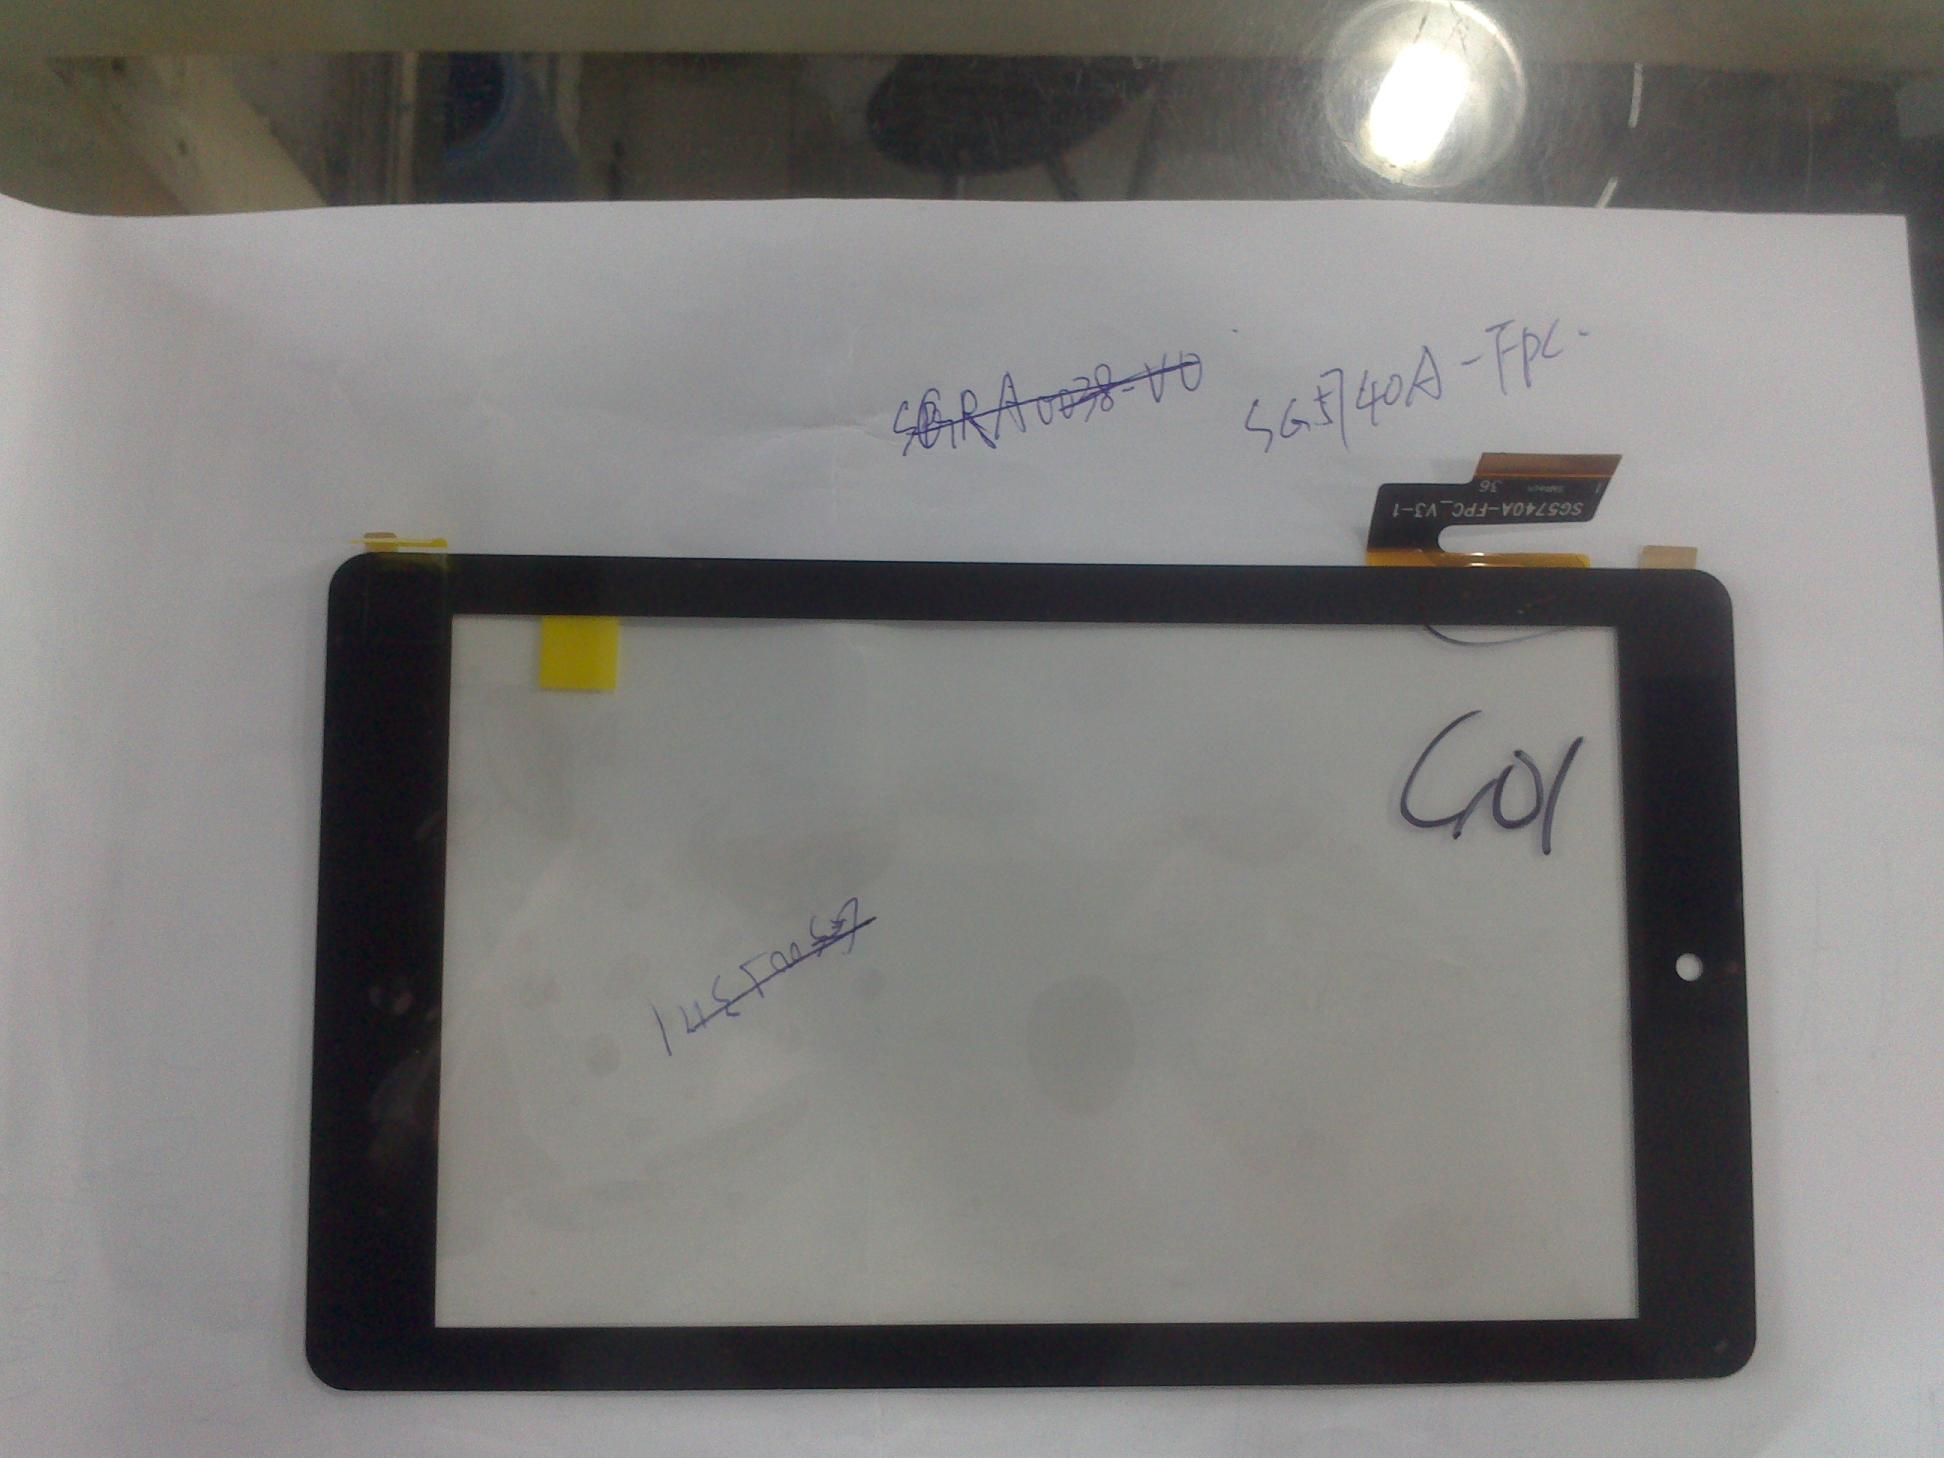 Запчасти для мобильных телефонов 7 inch new handwriting Tablet capacitive touch screen screen screen number is sg5740a/fpc_v3/1 SG5740A-FPC_V3-1 mymei fashion cartoon giraffe dear soft plush toy animal dolls baby kids birthday gift